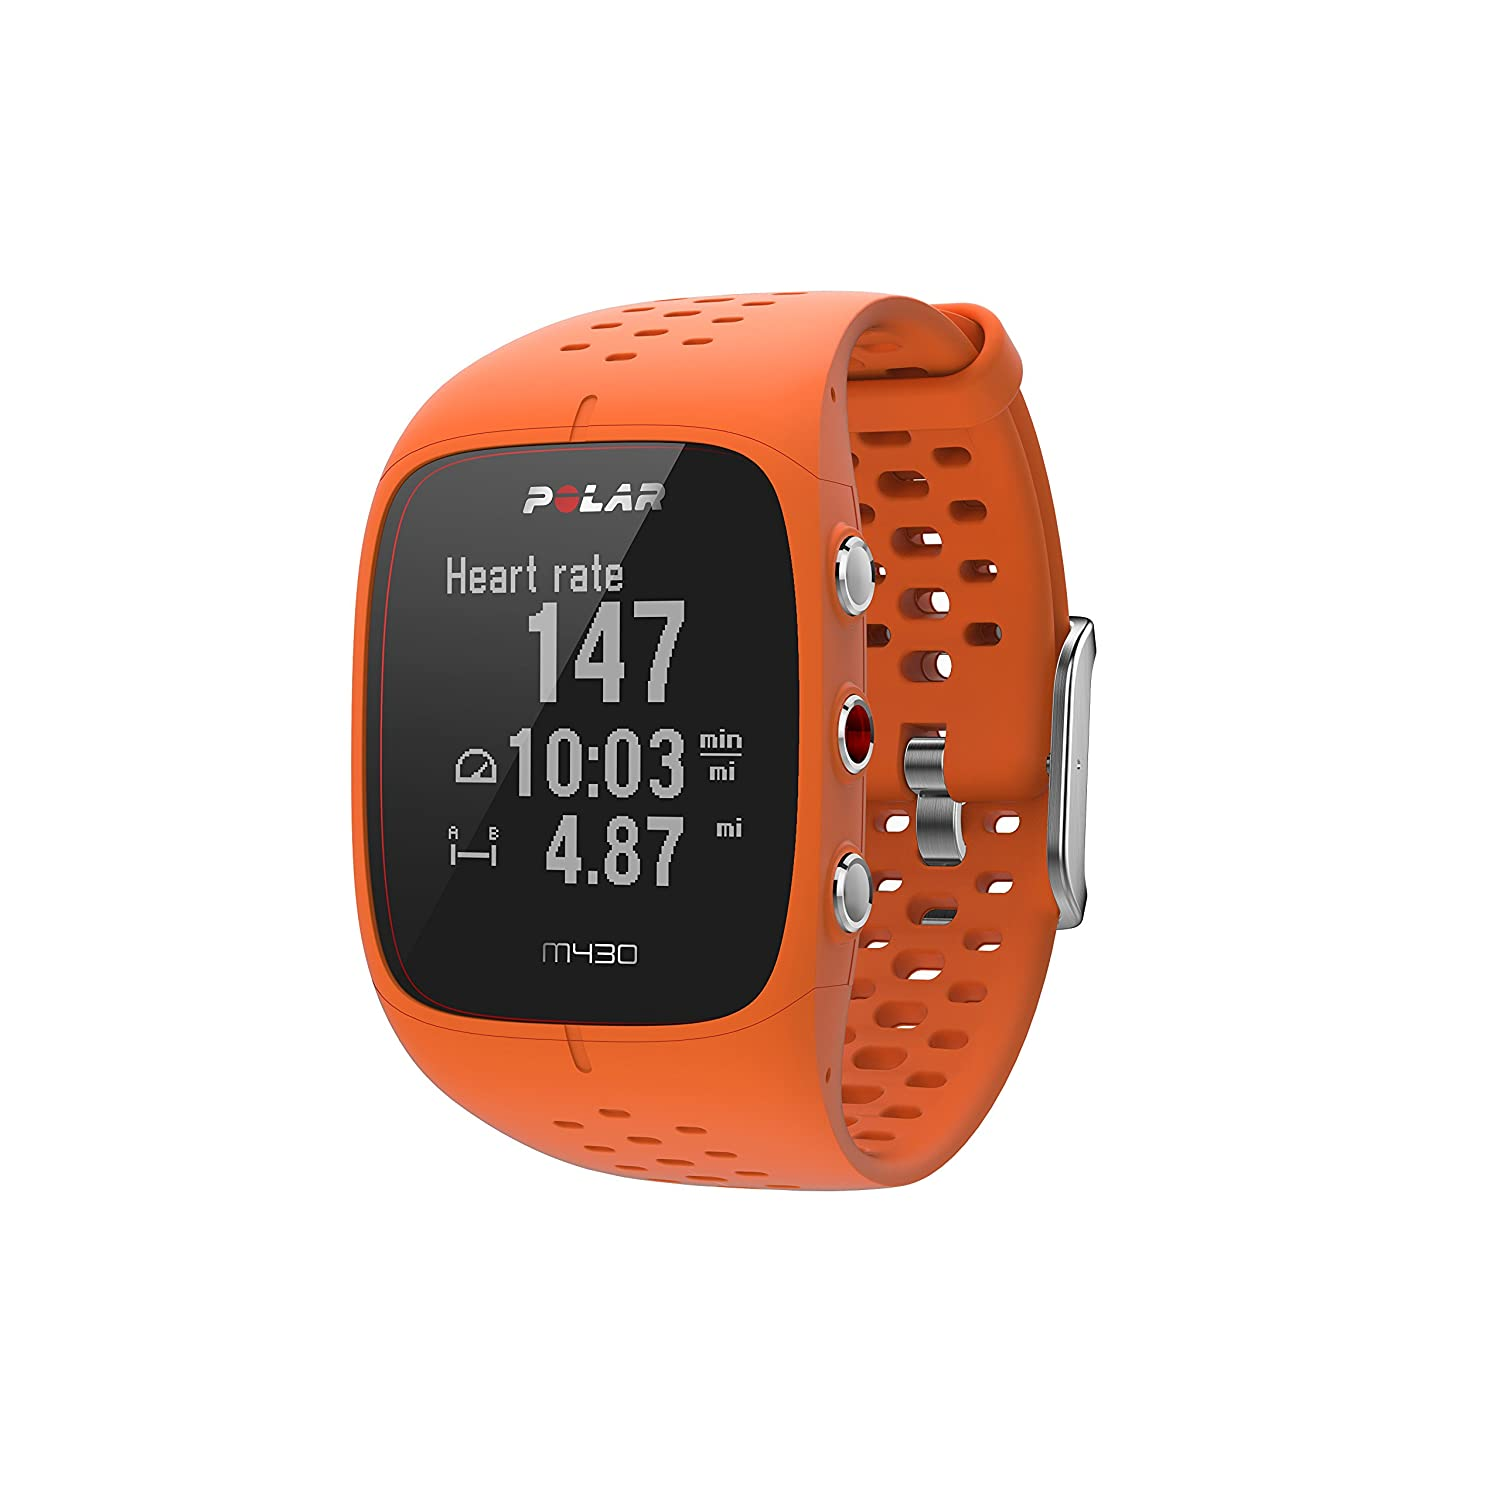 5. Polar M430 GPS Running Watch